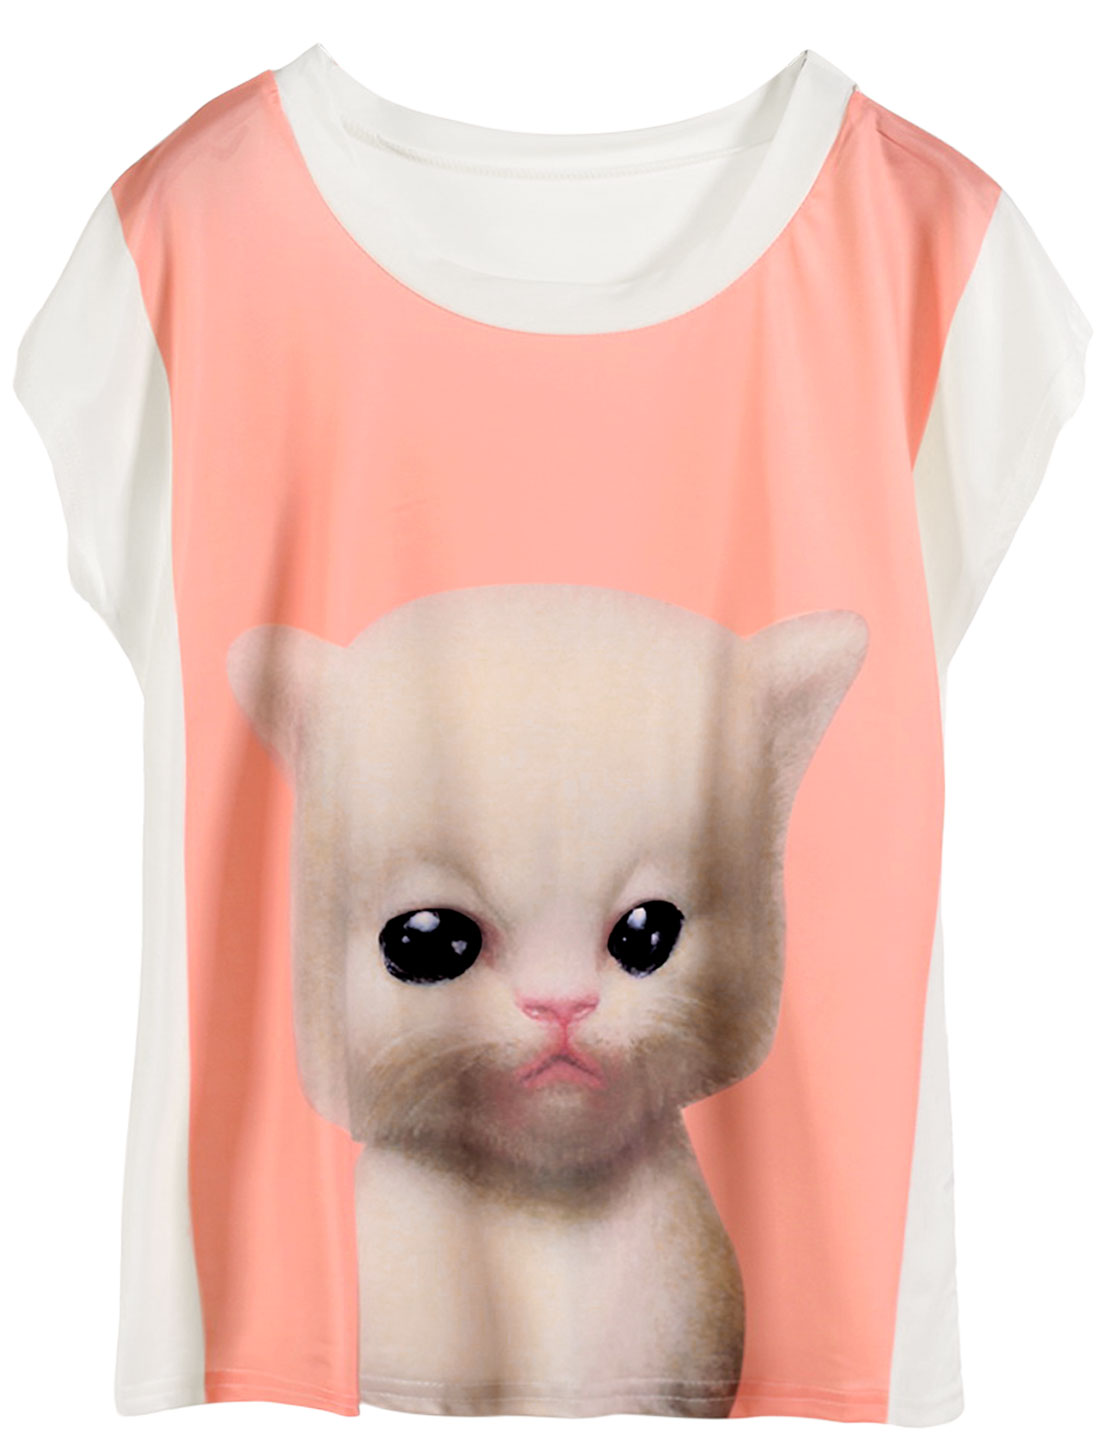 Lady Summer Fit Cat Pattern Slipover Casual Tee Shirt Coral Pink White XS